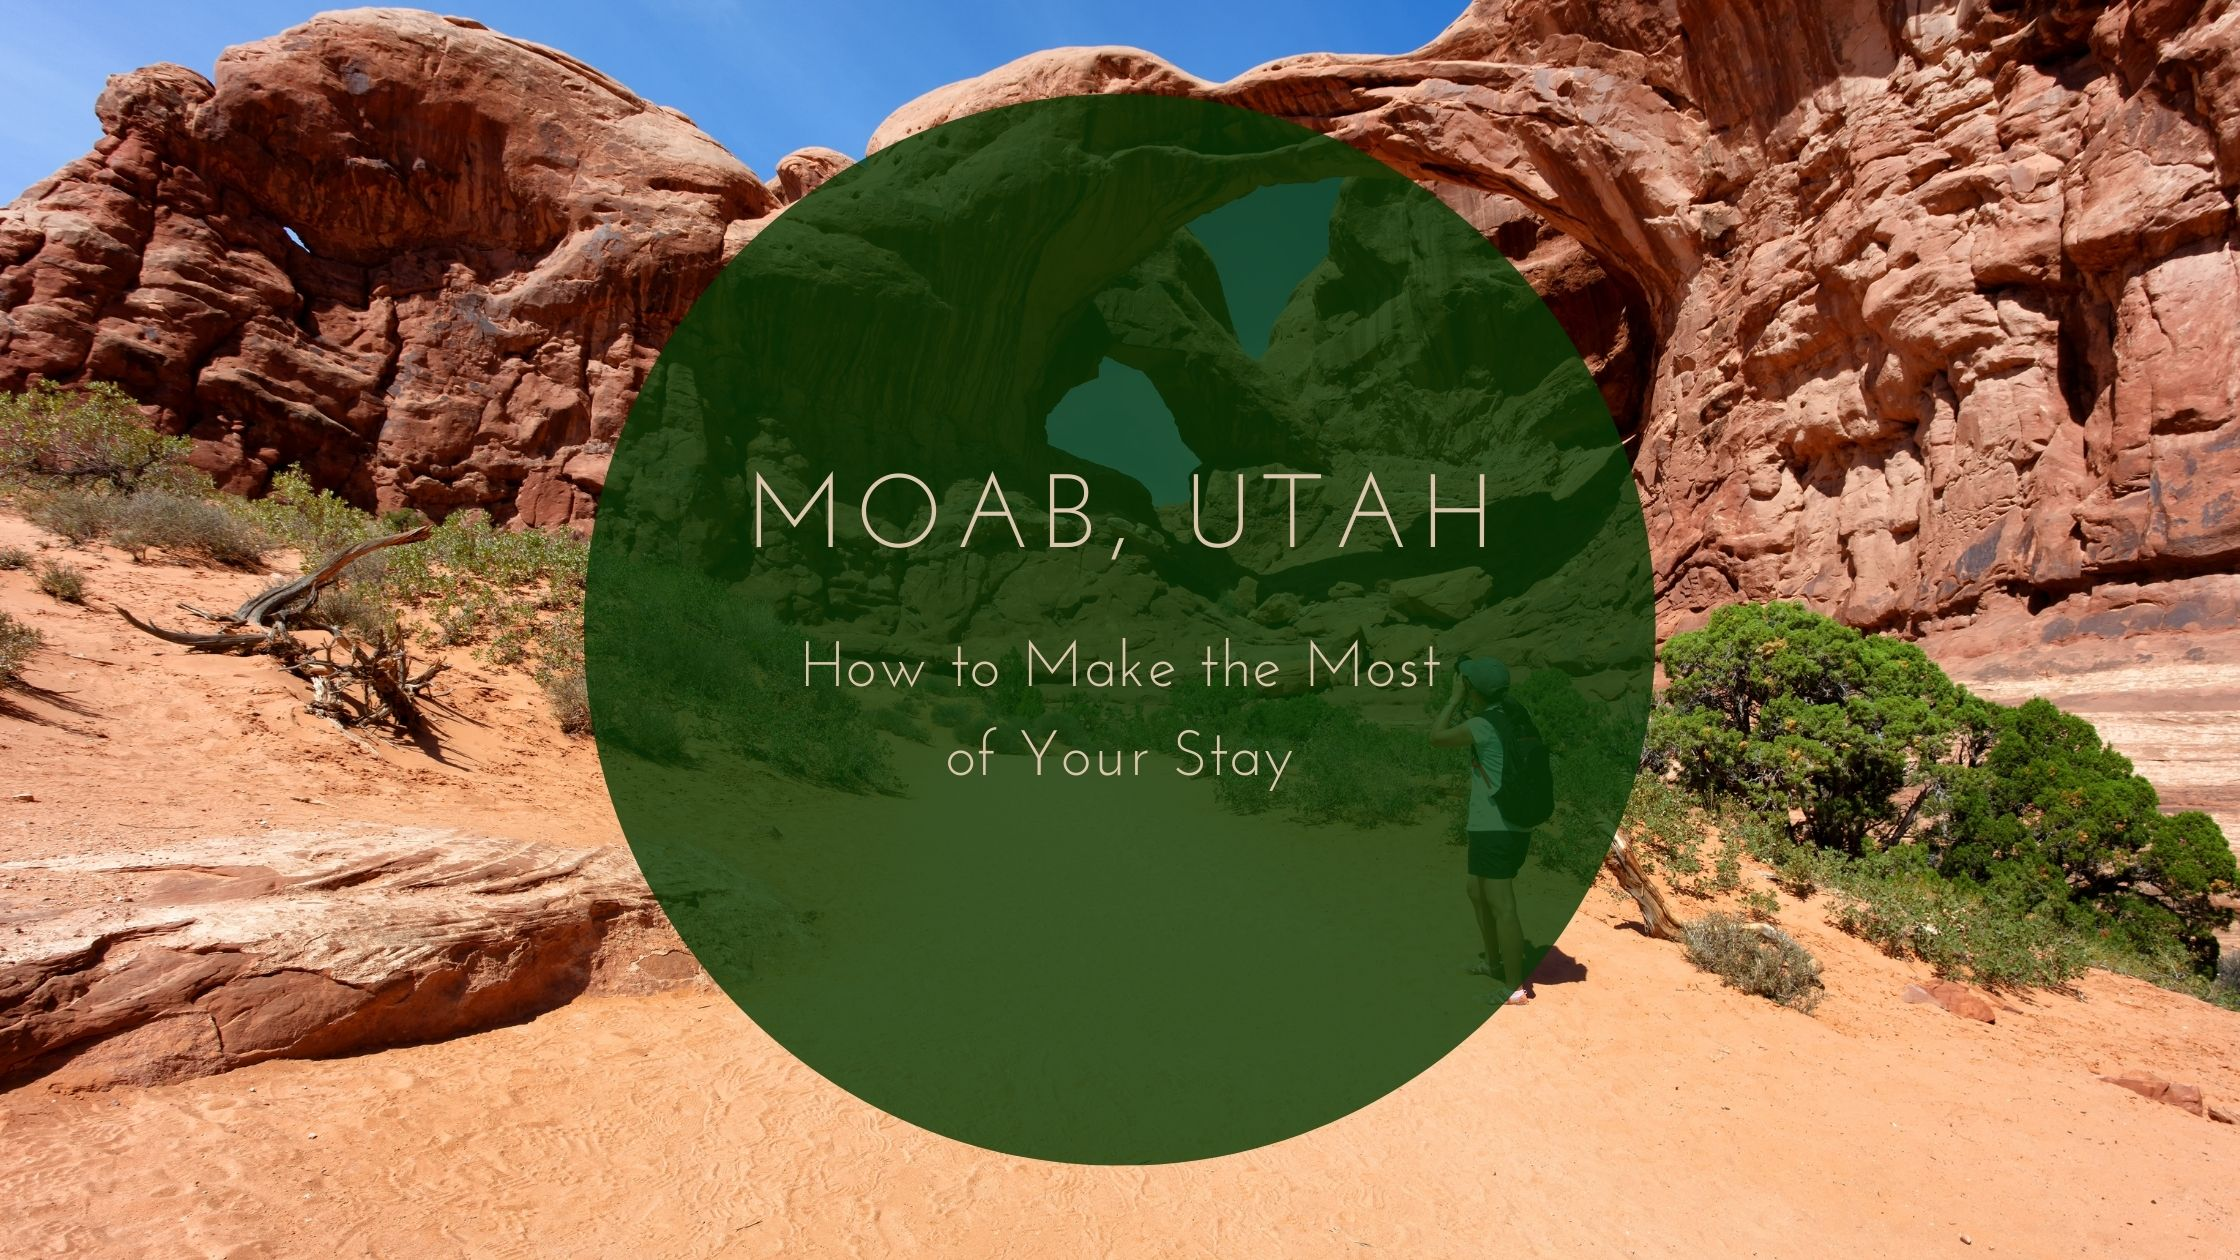 How to make the most of your stay in Moab, Utah